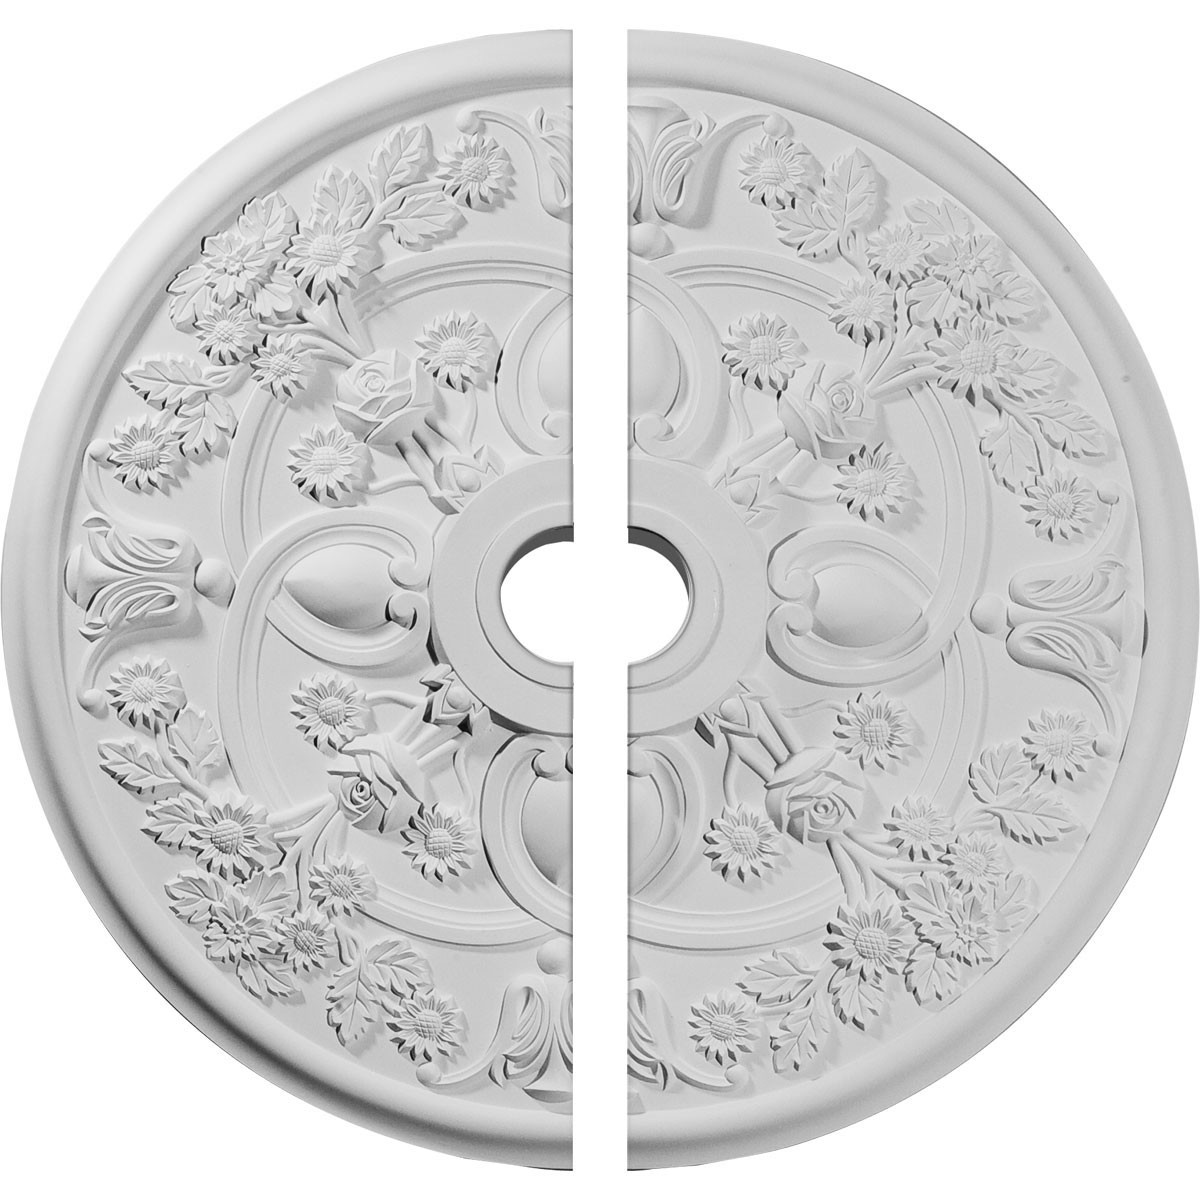 """EM-CM30RO2 - 30 7/8""""OD x 3 5/8""""ID x 1 3/8""""P Rose Ceiling Medallion, Two Piece (Fits Canopies up to 5 1/4"""")"""